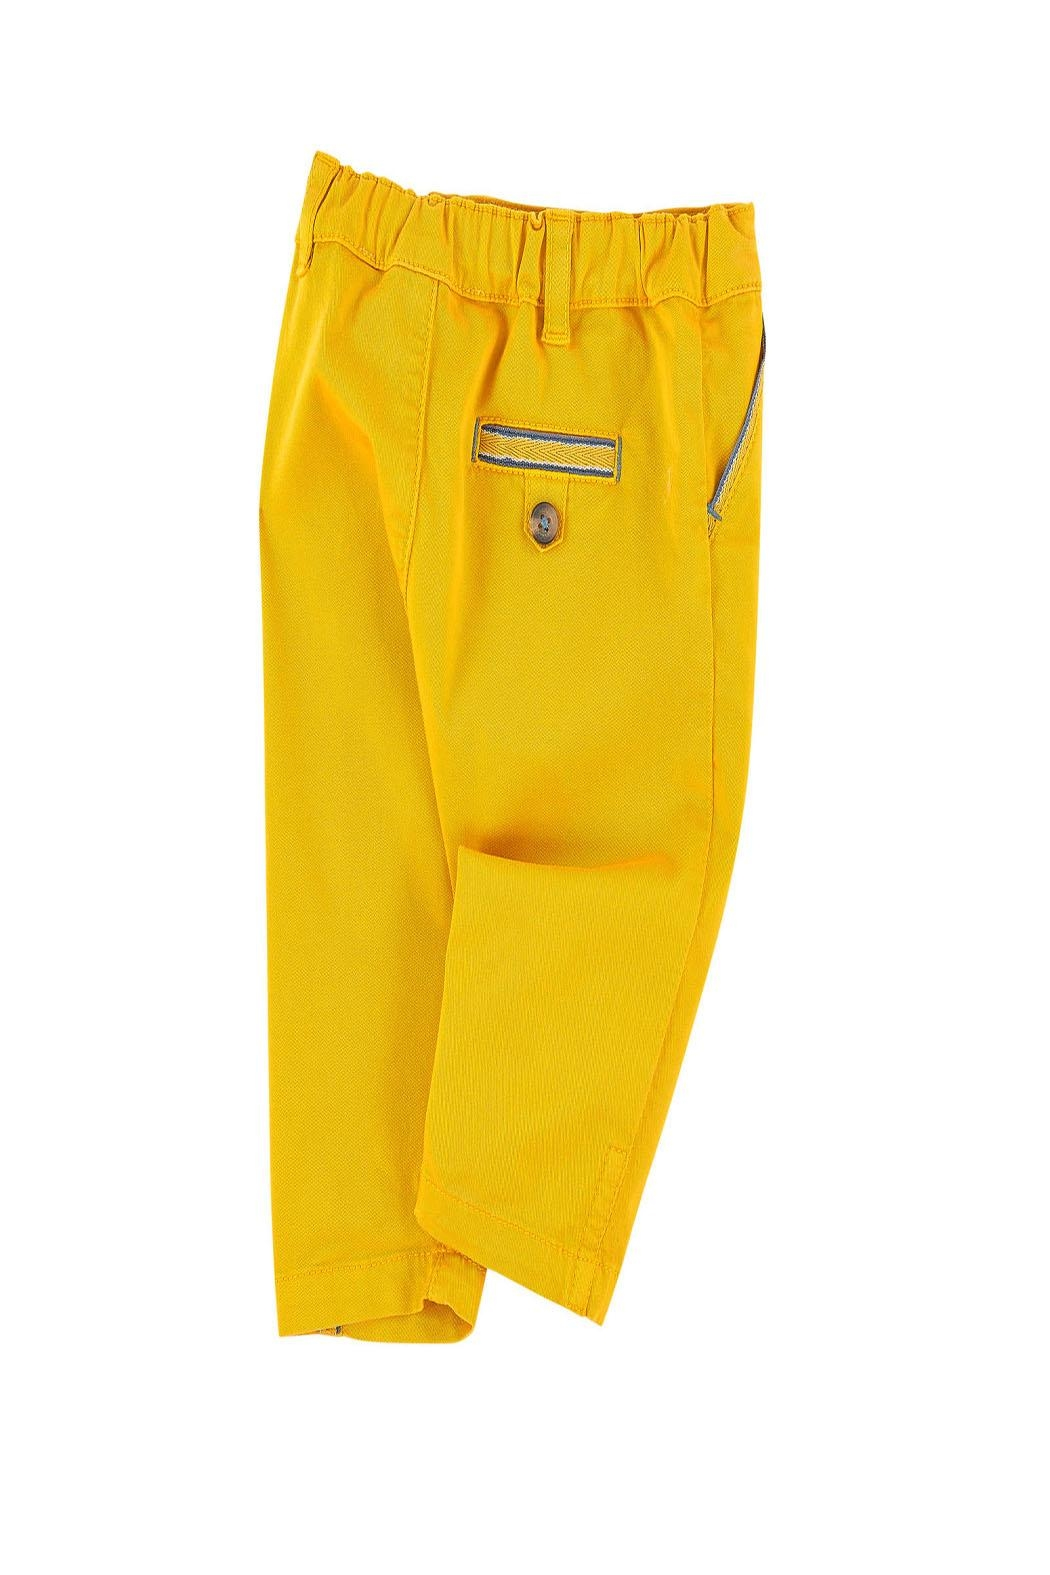 Tartine et Chocolat Yellow Twill Trousers - Side Cropped Image